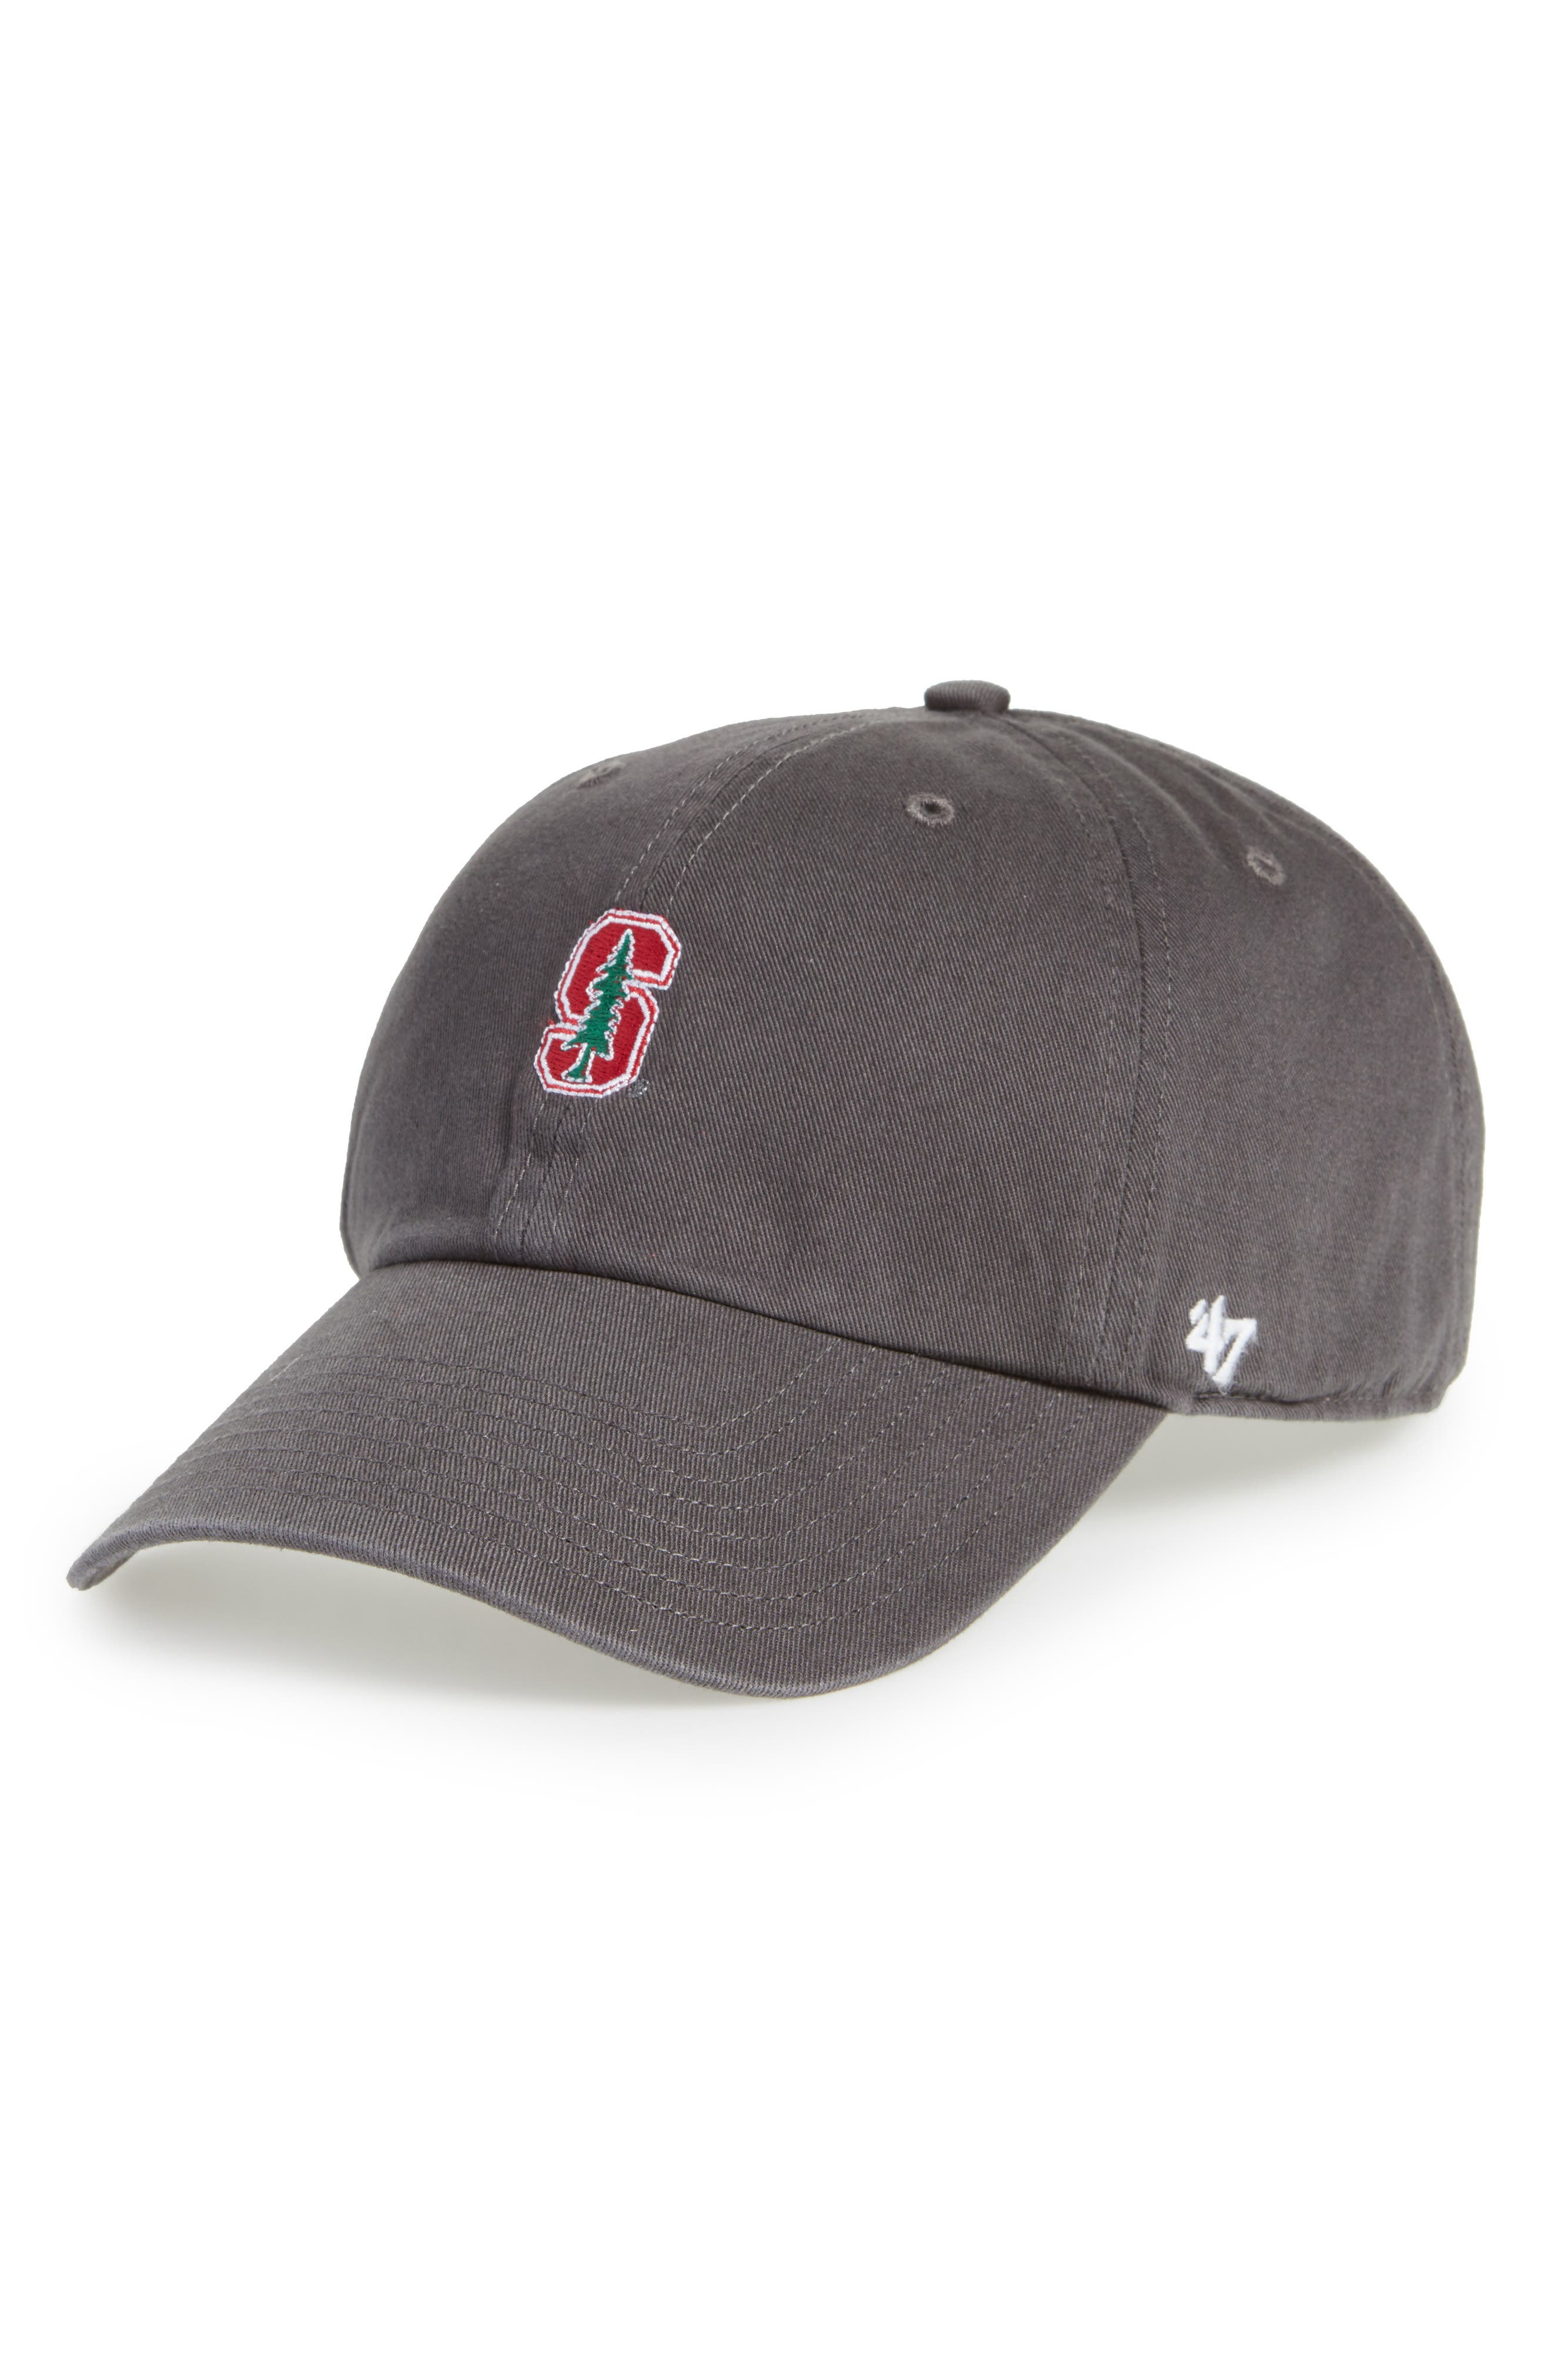 Collegiate Clean-Up Stanford Cardinals Ball Cap,                         Main,                         color, 020